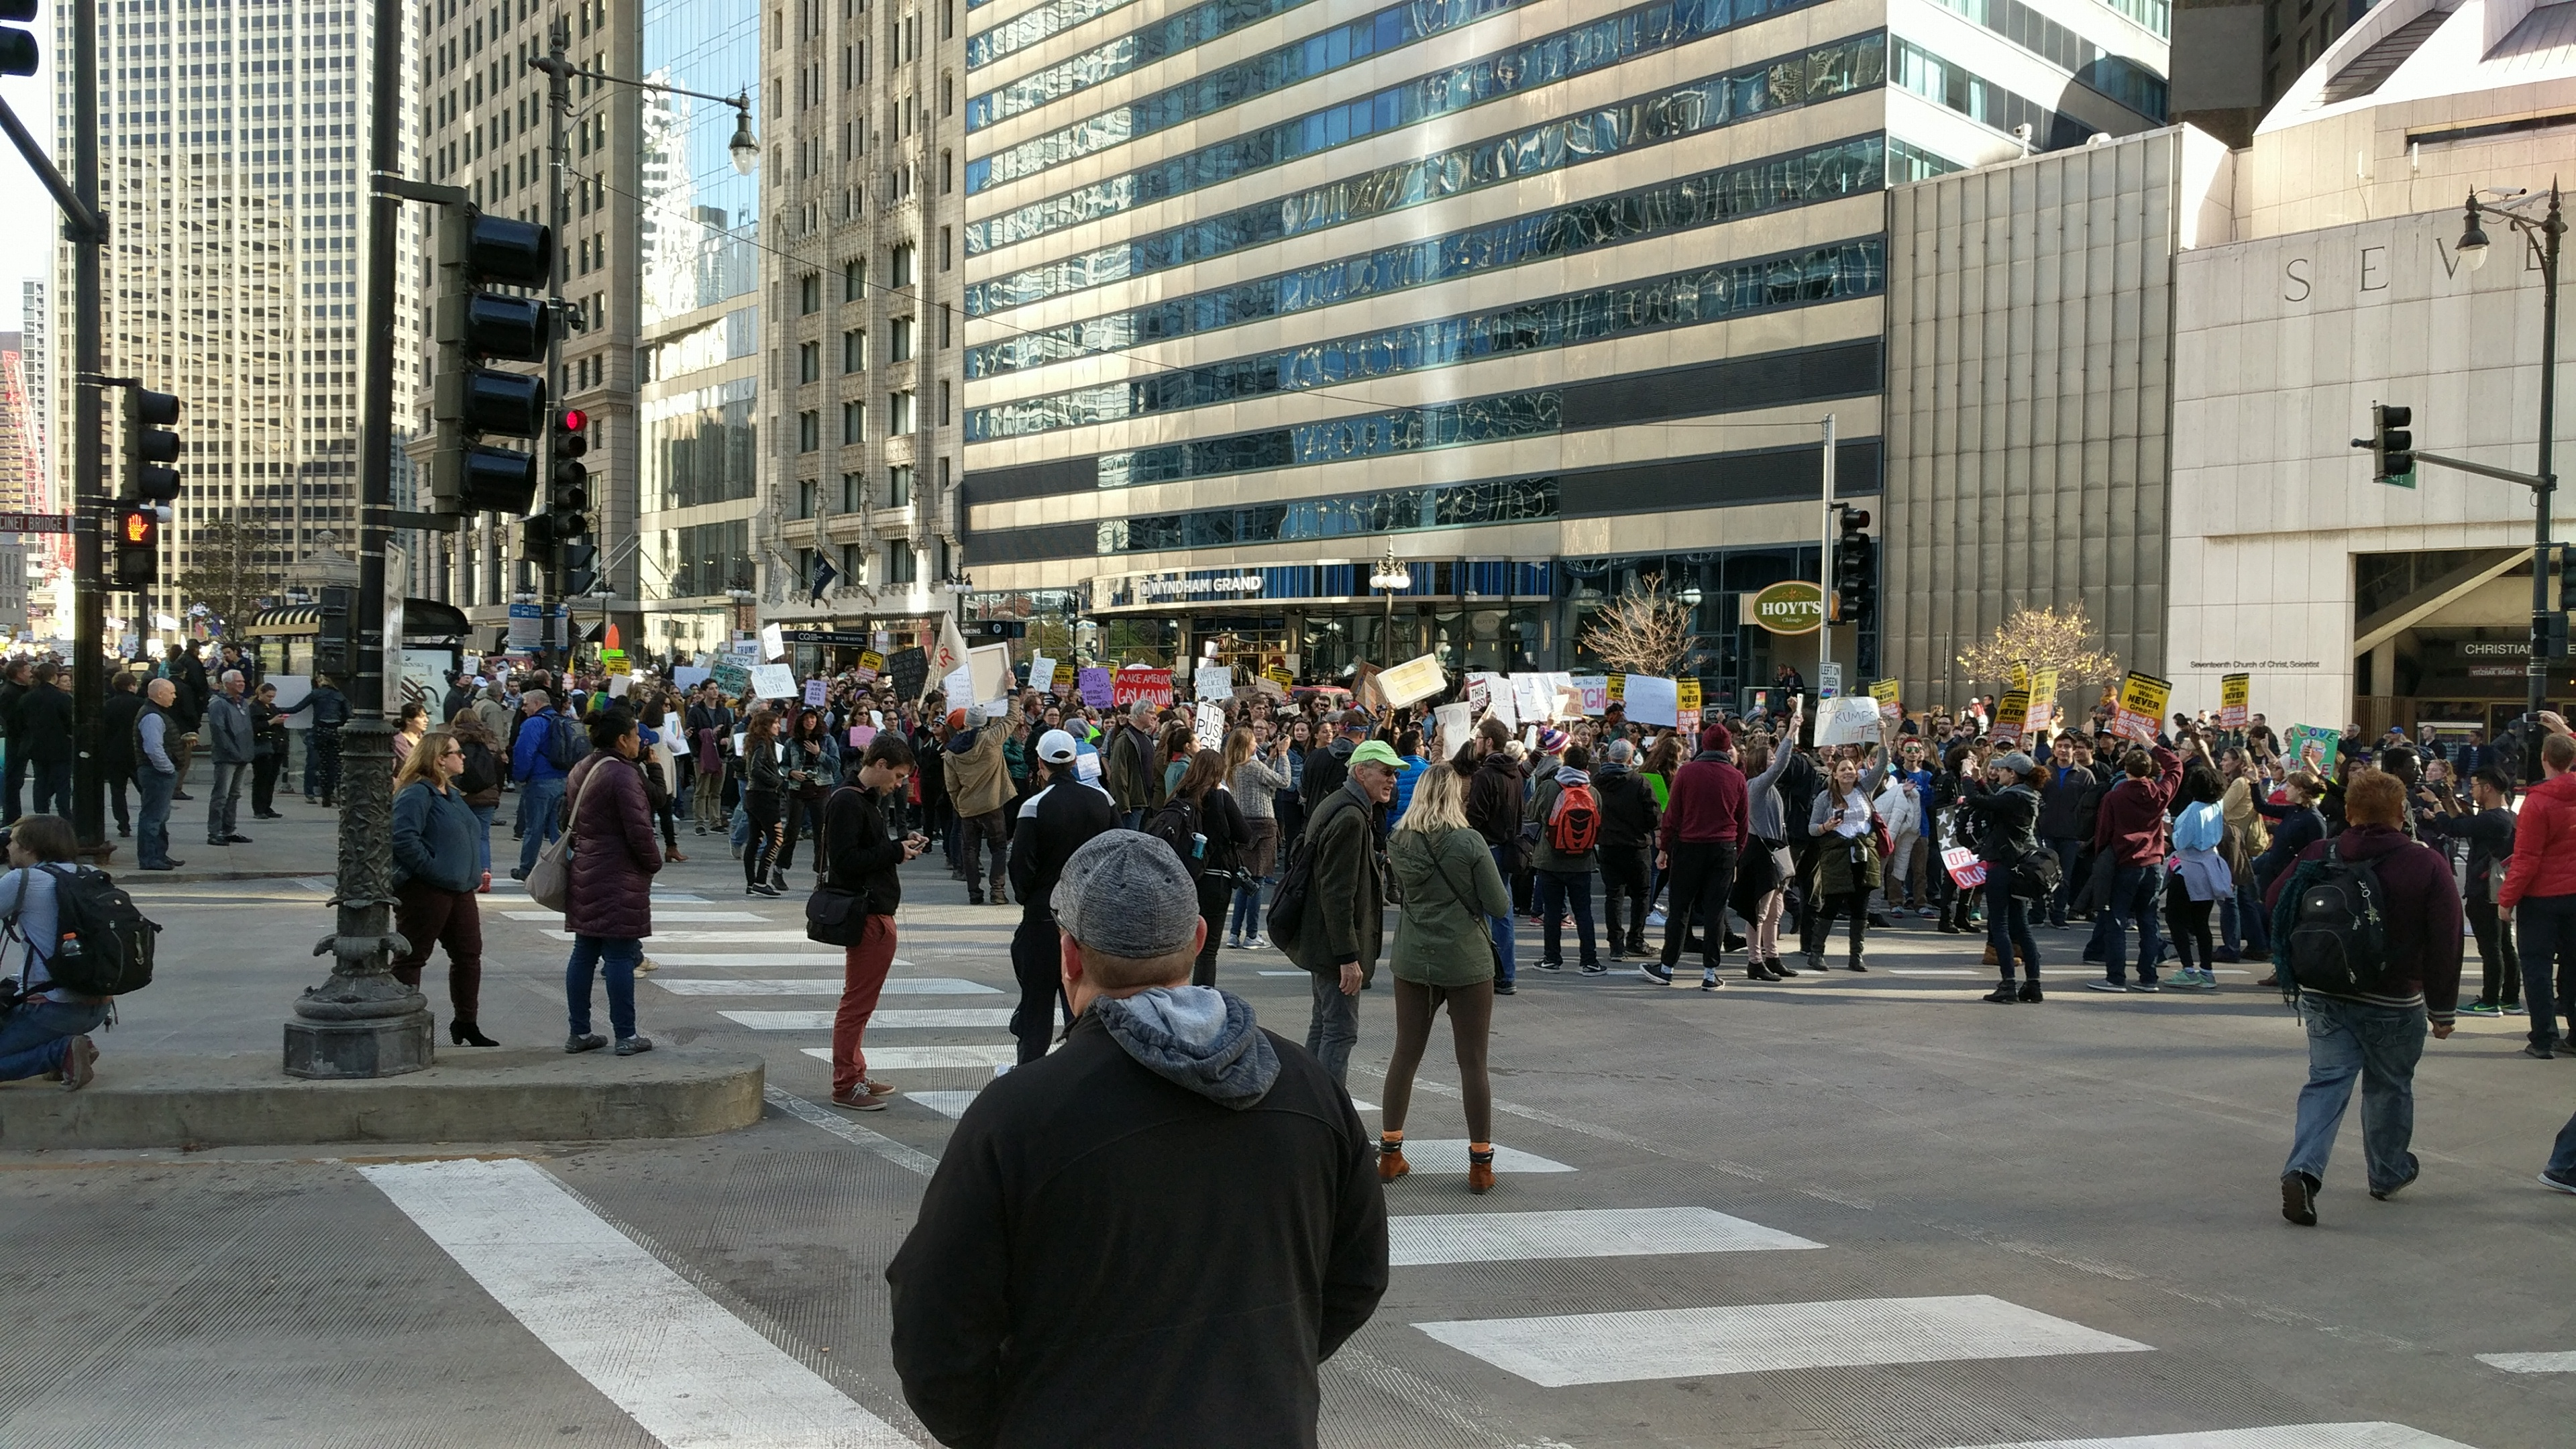 Big day for Trump protests in Chicago